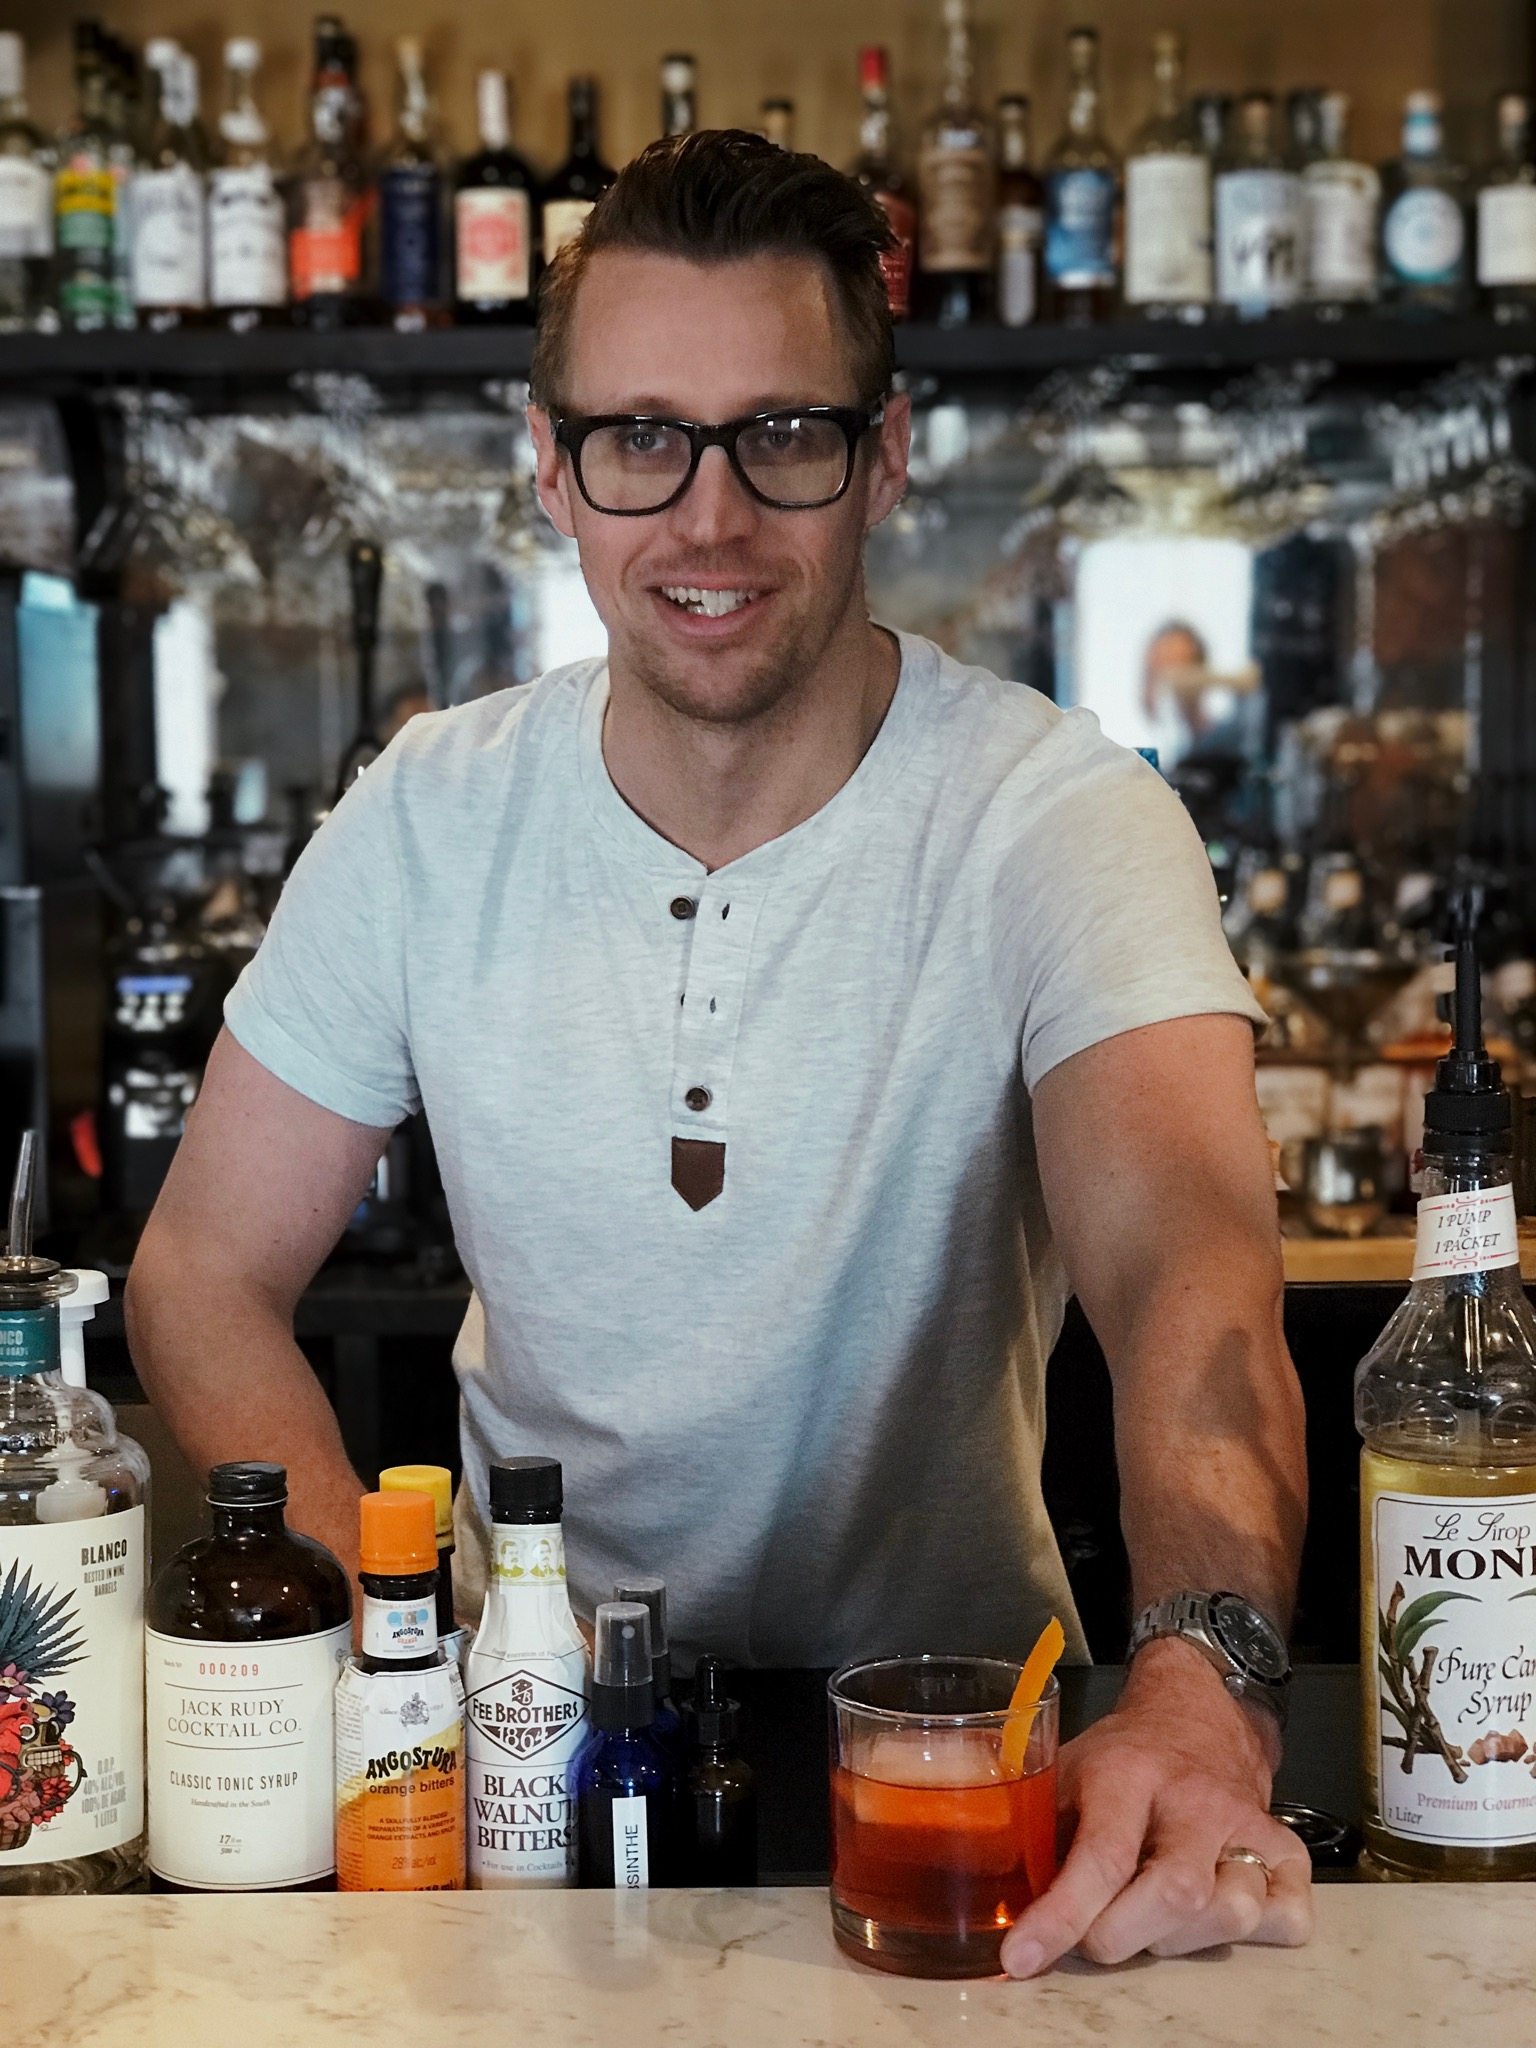 Owner and founder Cody Pellerin serving up his favorite cocktail, Plantation OFTD Negroni.